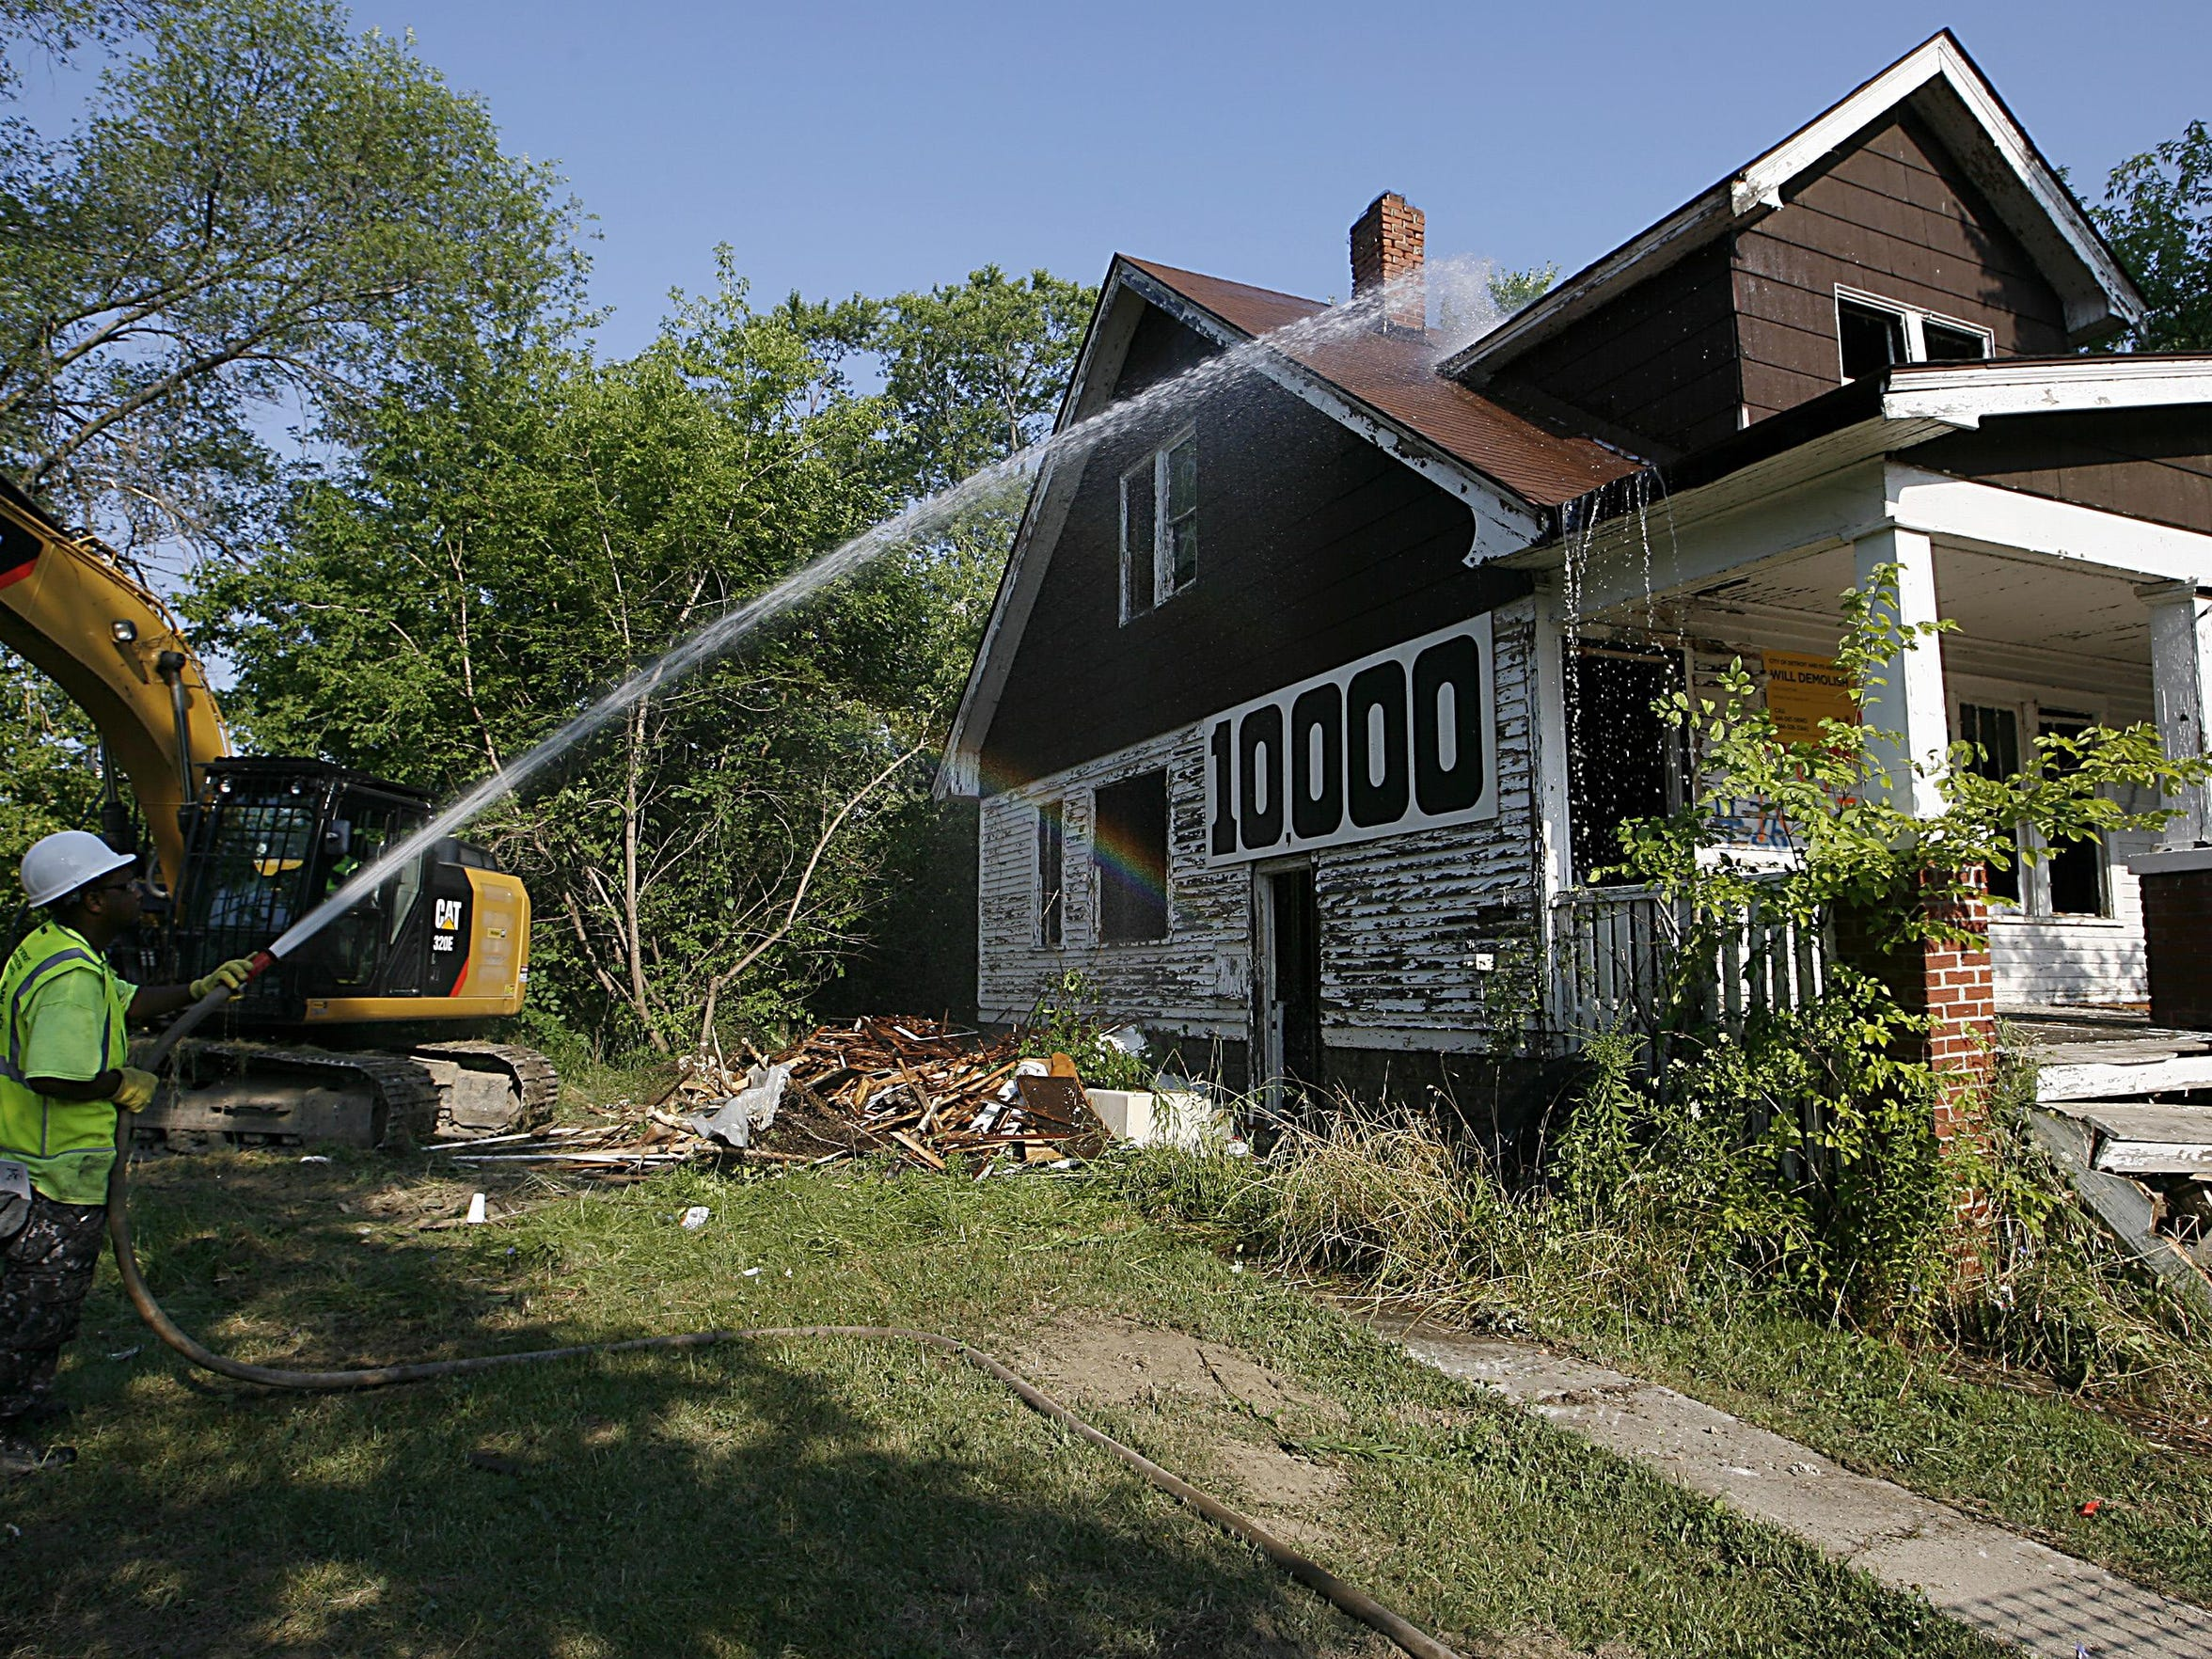 Detroit's demolition program has razed more than 16,823 blighted houses since 2014.